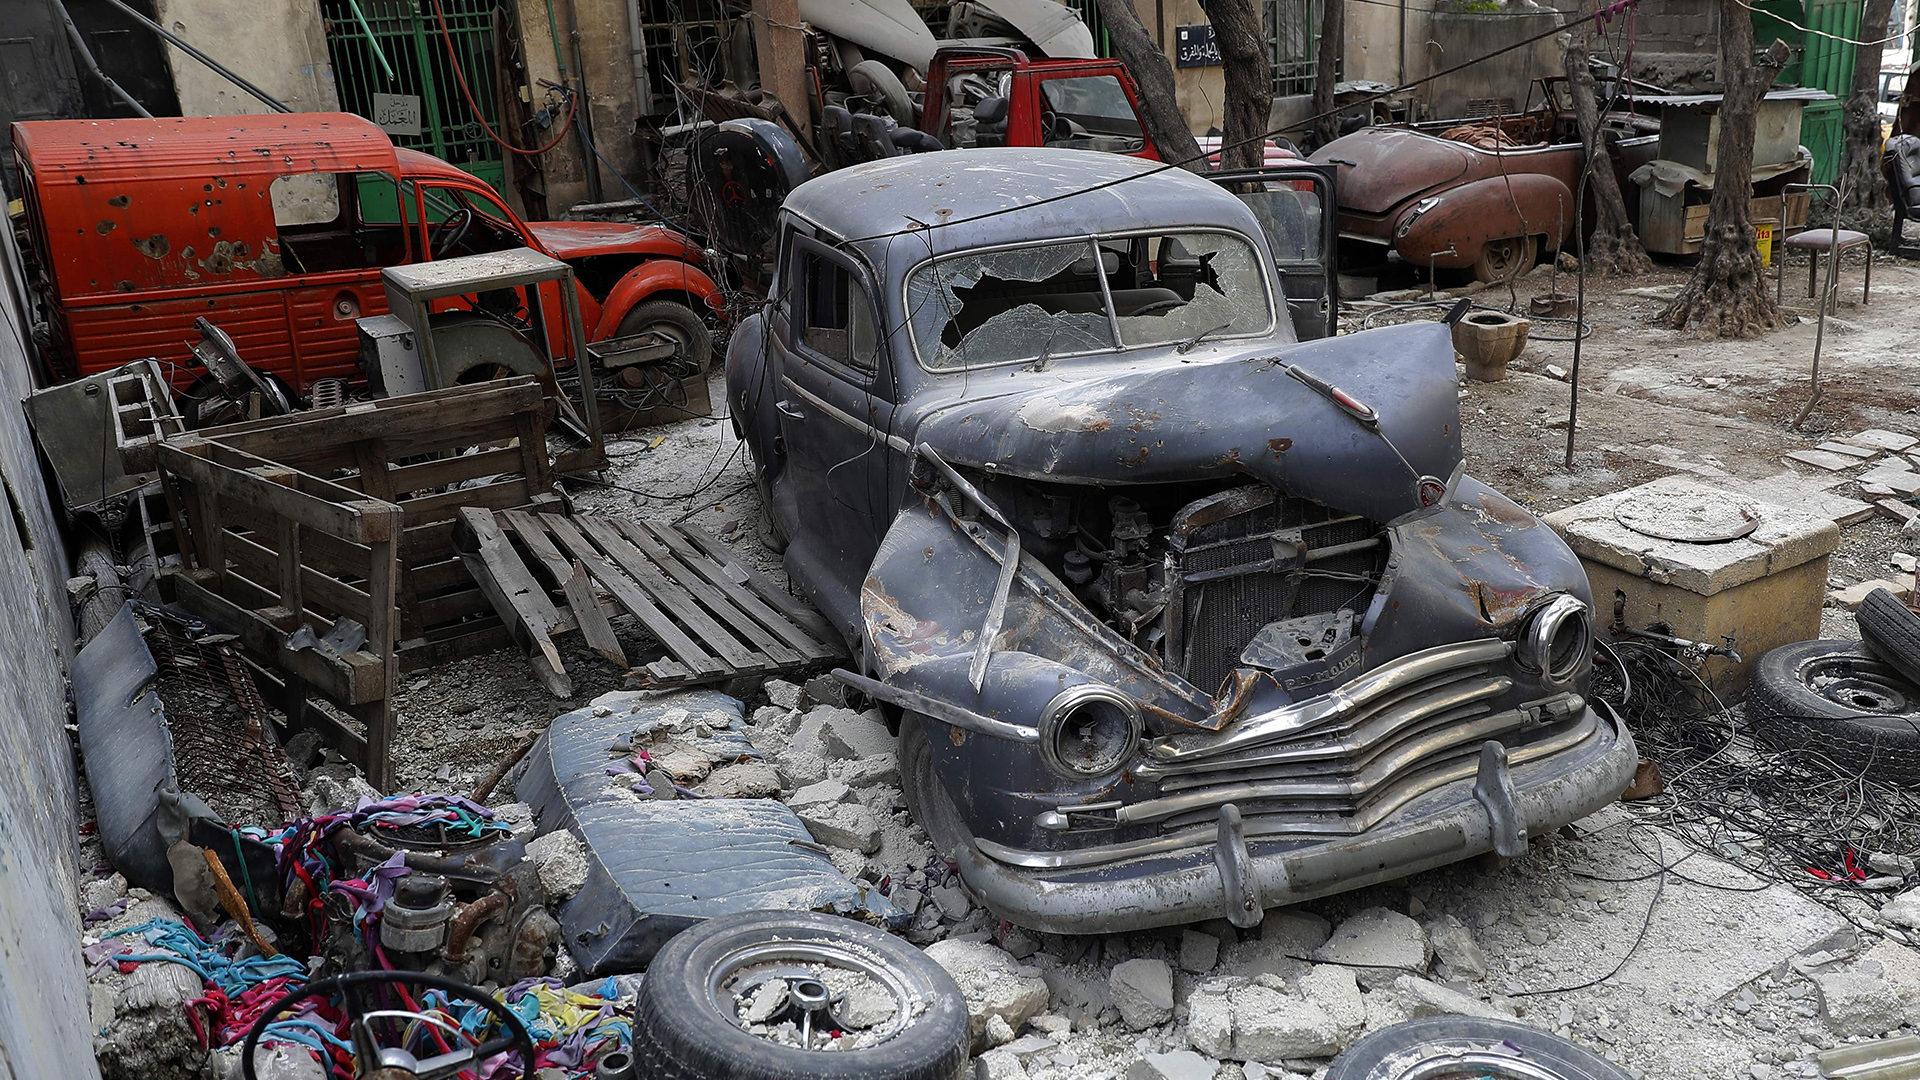 Syrian Man Loses Most of Classic Car Collection in War - The Drive